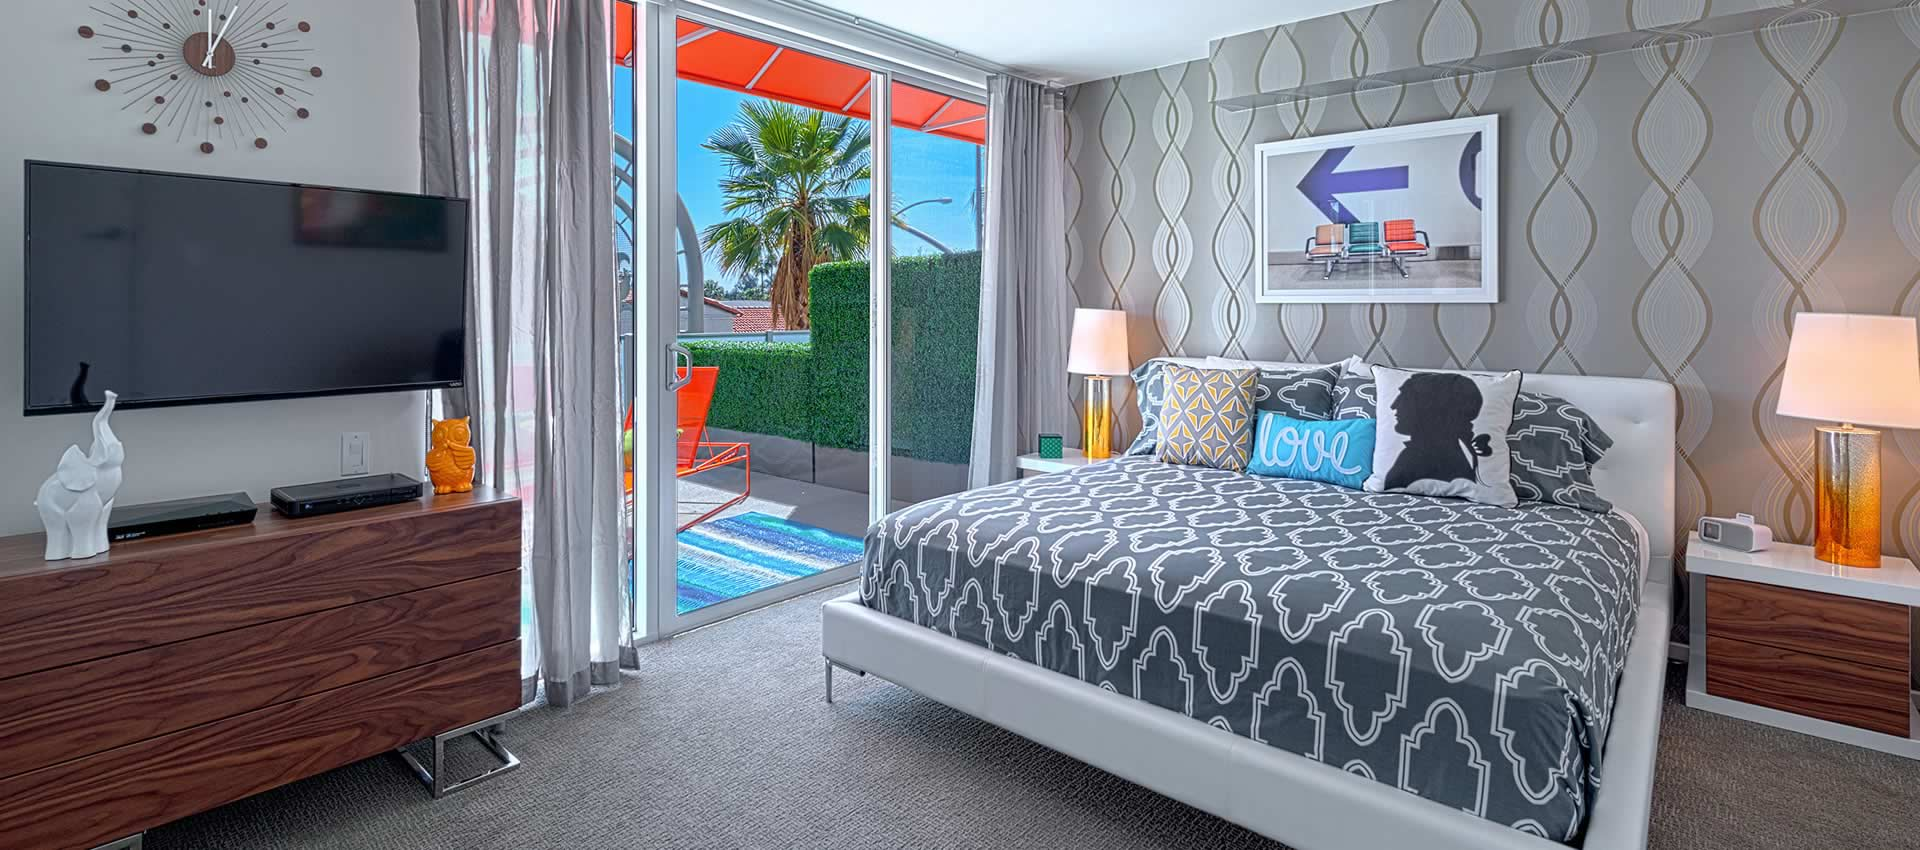 another view of the bedroom with view of patio out the sliding glass doors